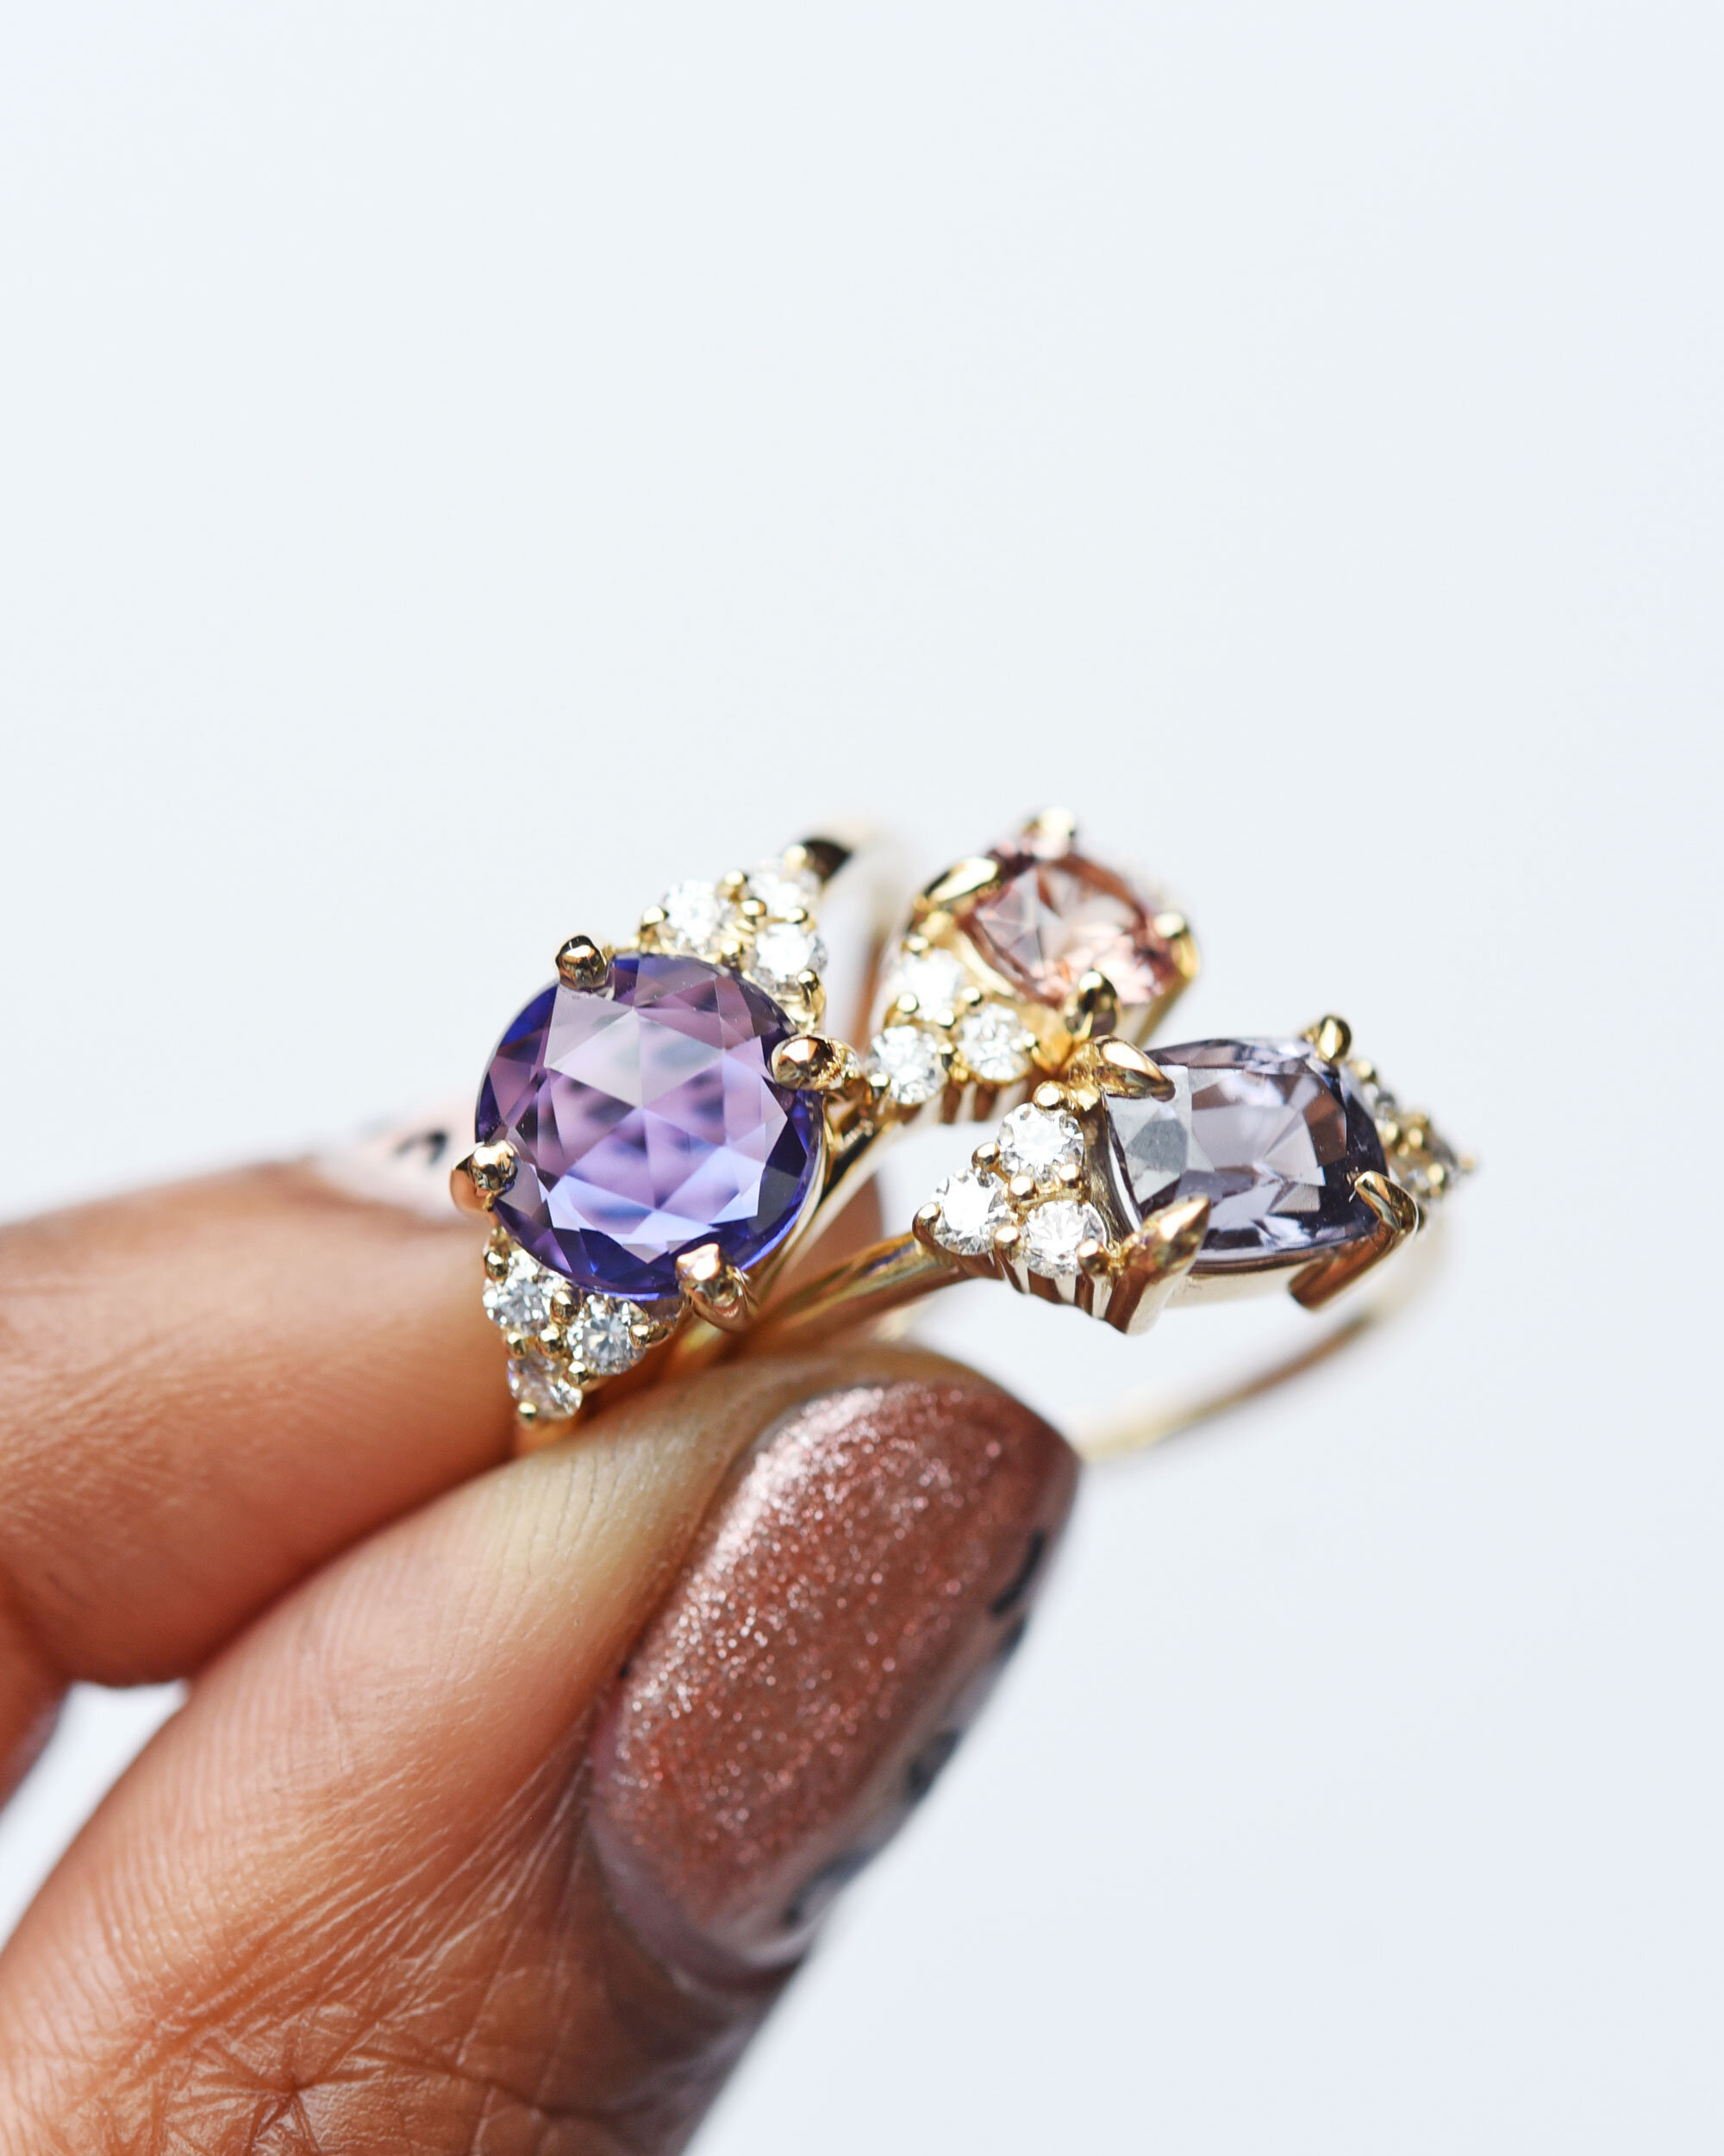 Gemstone and Diamond Wedding Engagement Rings by Valerie Madison Jewelry Seattle